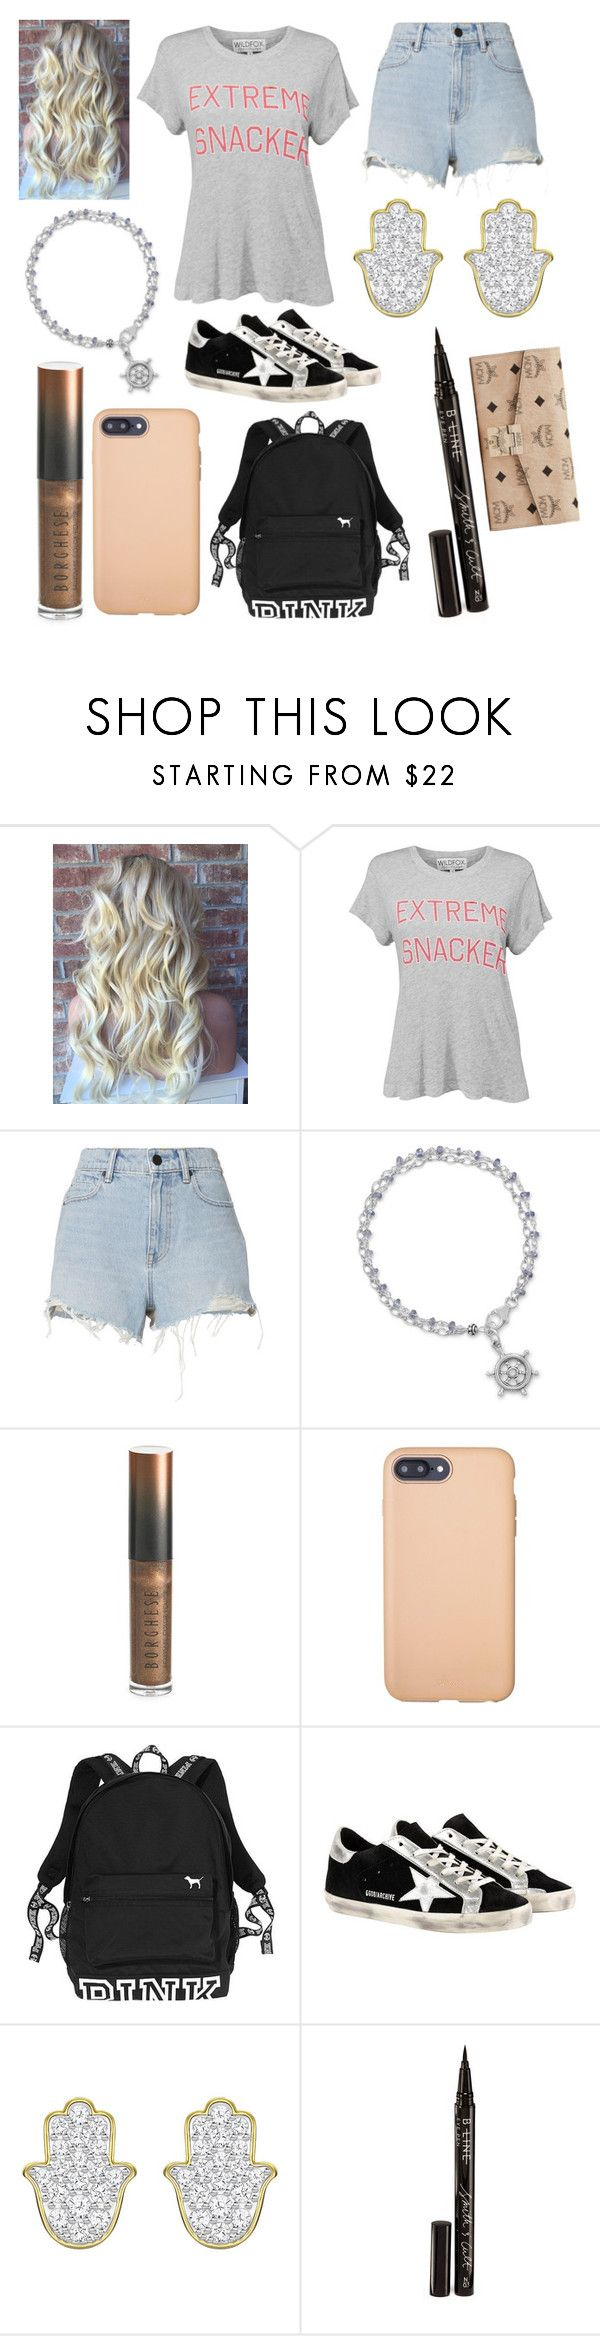 """""""Summer radio-broadcasting course"""" by hailey-smith-13 ❤ liked on Polyvore featuring Wildfox, Alexander Wang, Borghese, Sonix, Victoria's Secret PINK, Golden Goose, Smith & Cult and MCM"""